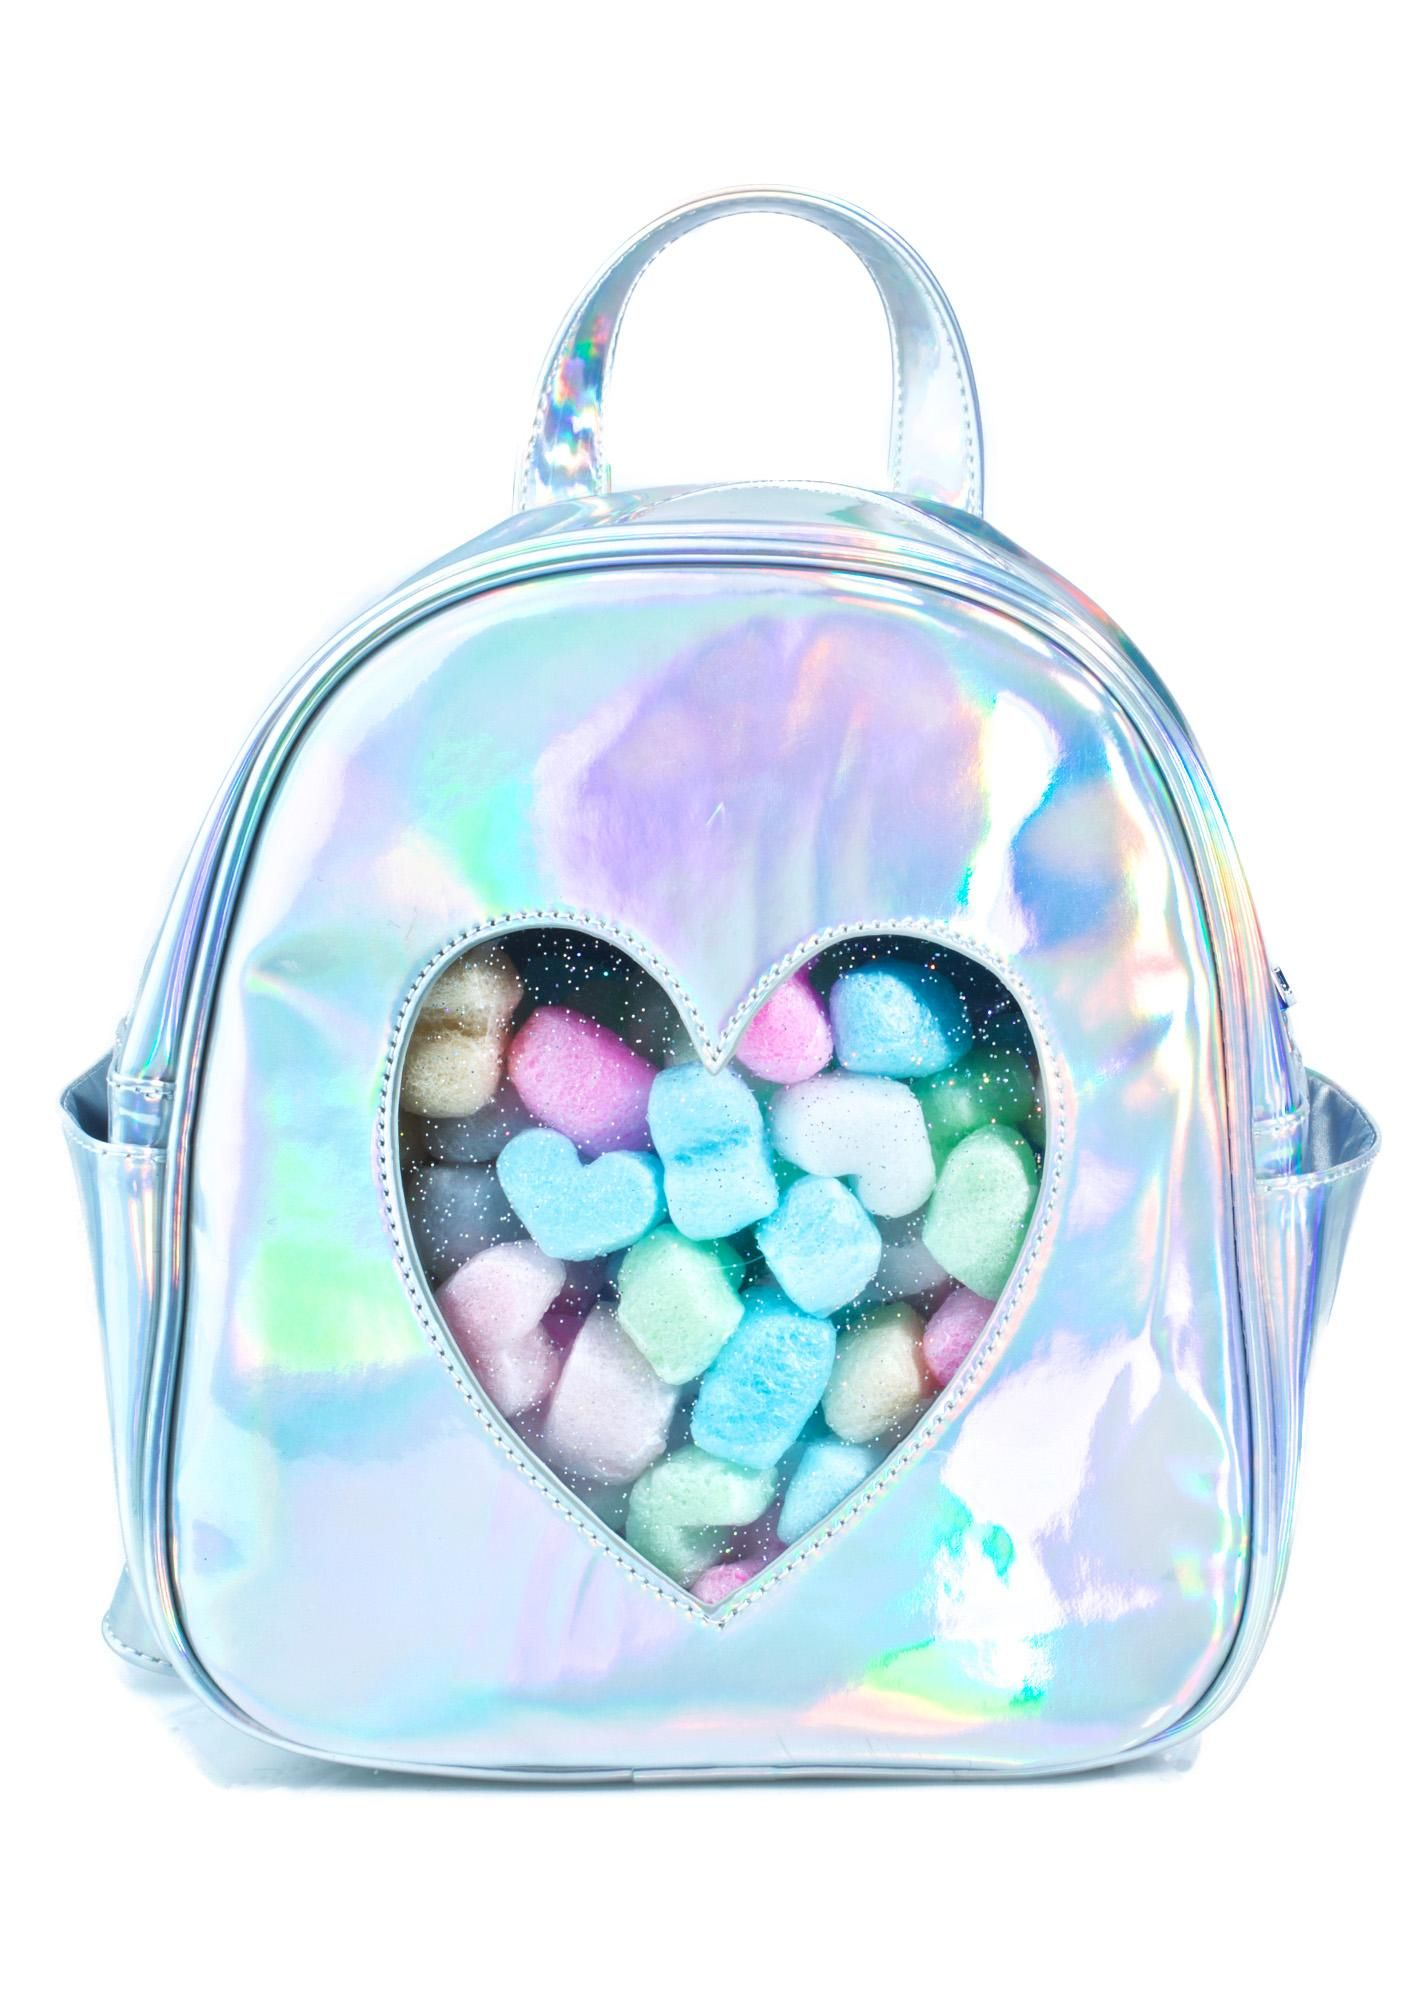 Sugarbaby Sweetheart Backpack what's in yer bag, kitten?! Give 'em a sneak peek into yer life with this adorable backpack, featurin' a hyper holographic silver construction, top zip closure, side pockets, a transparent heart cutout across the front, and adjustable straps.